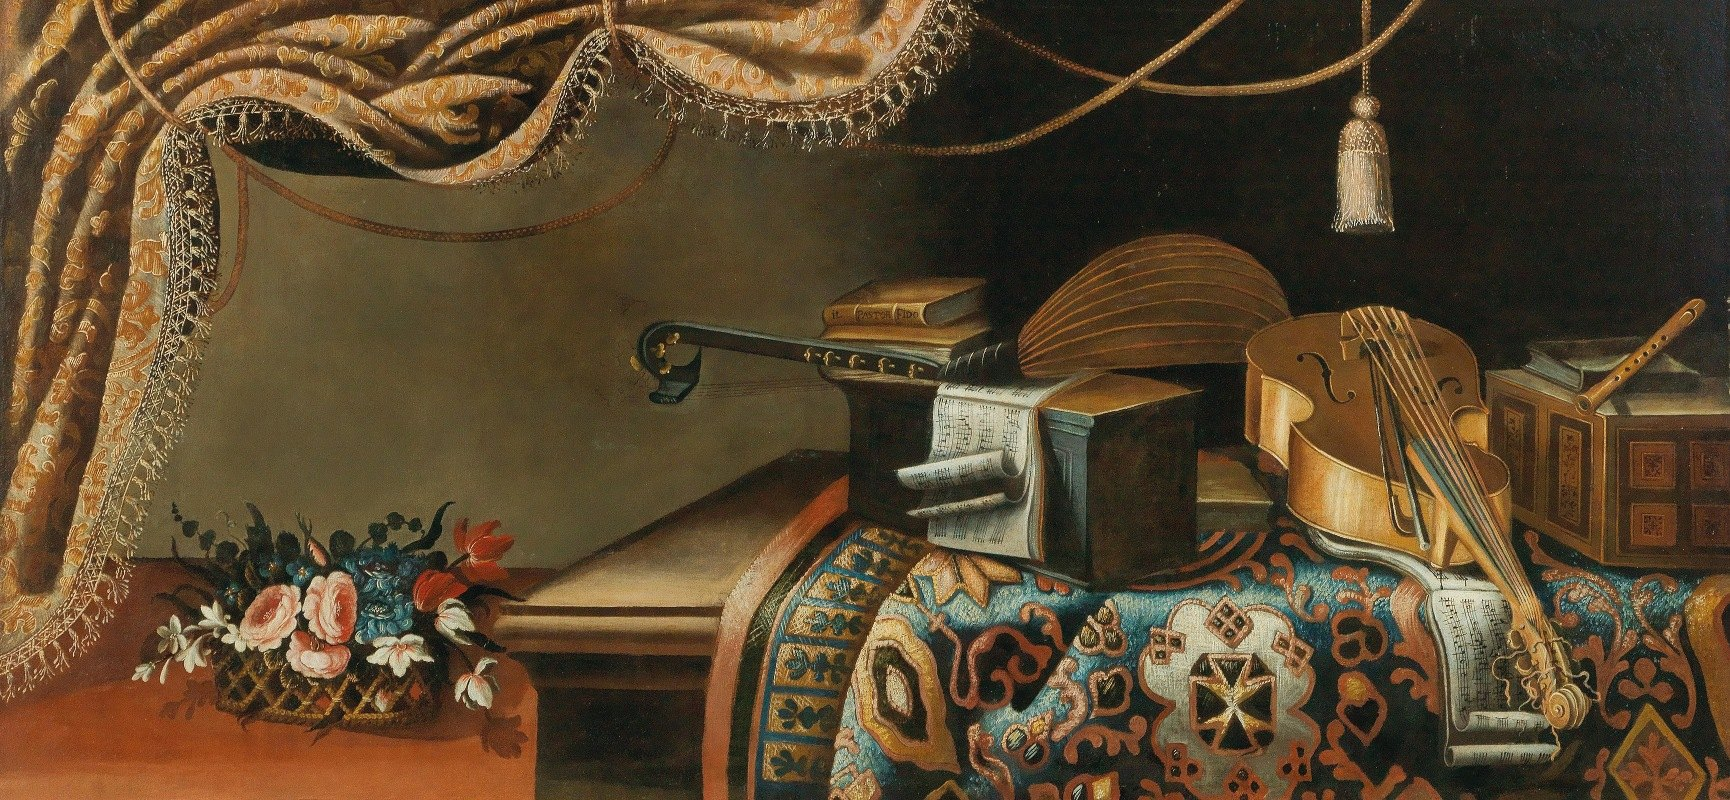 School of Bergamo - Still life with musical instruments and books